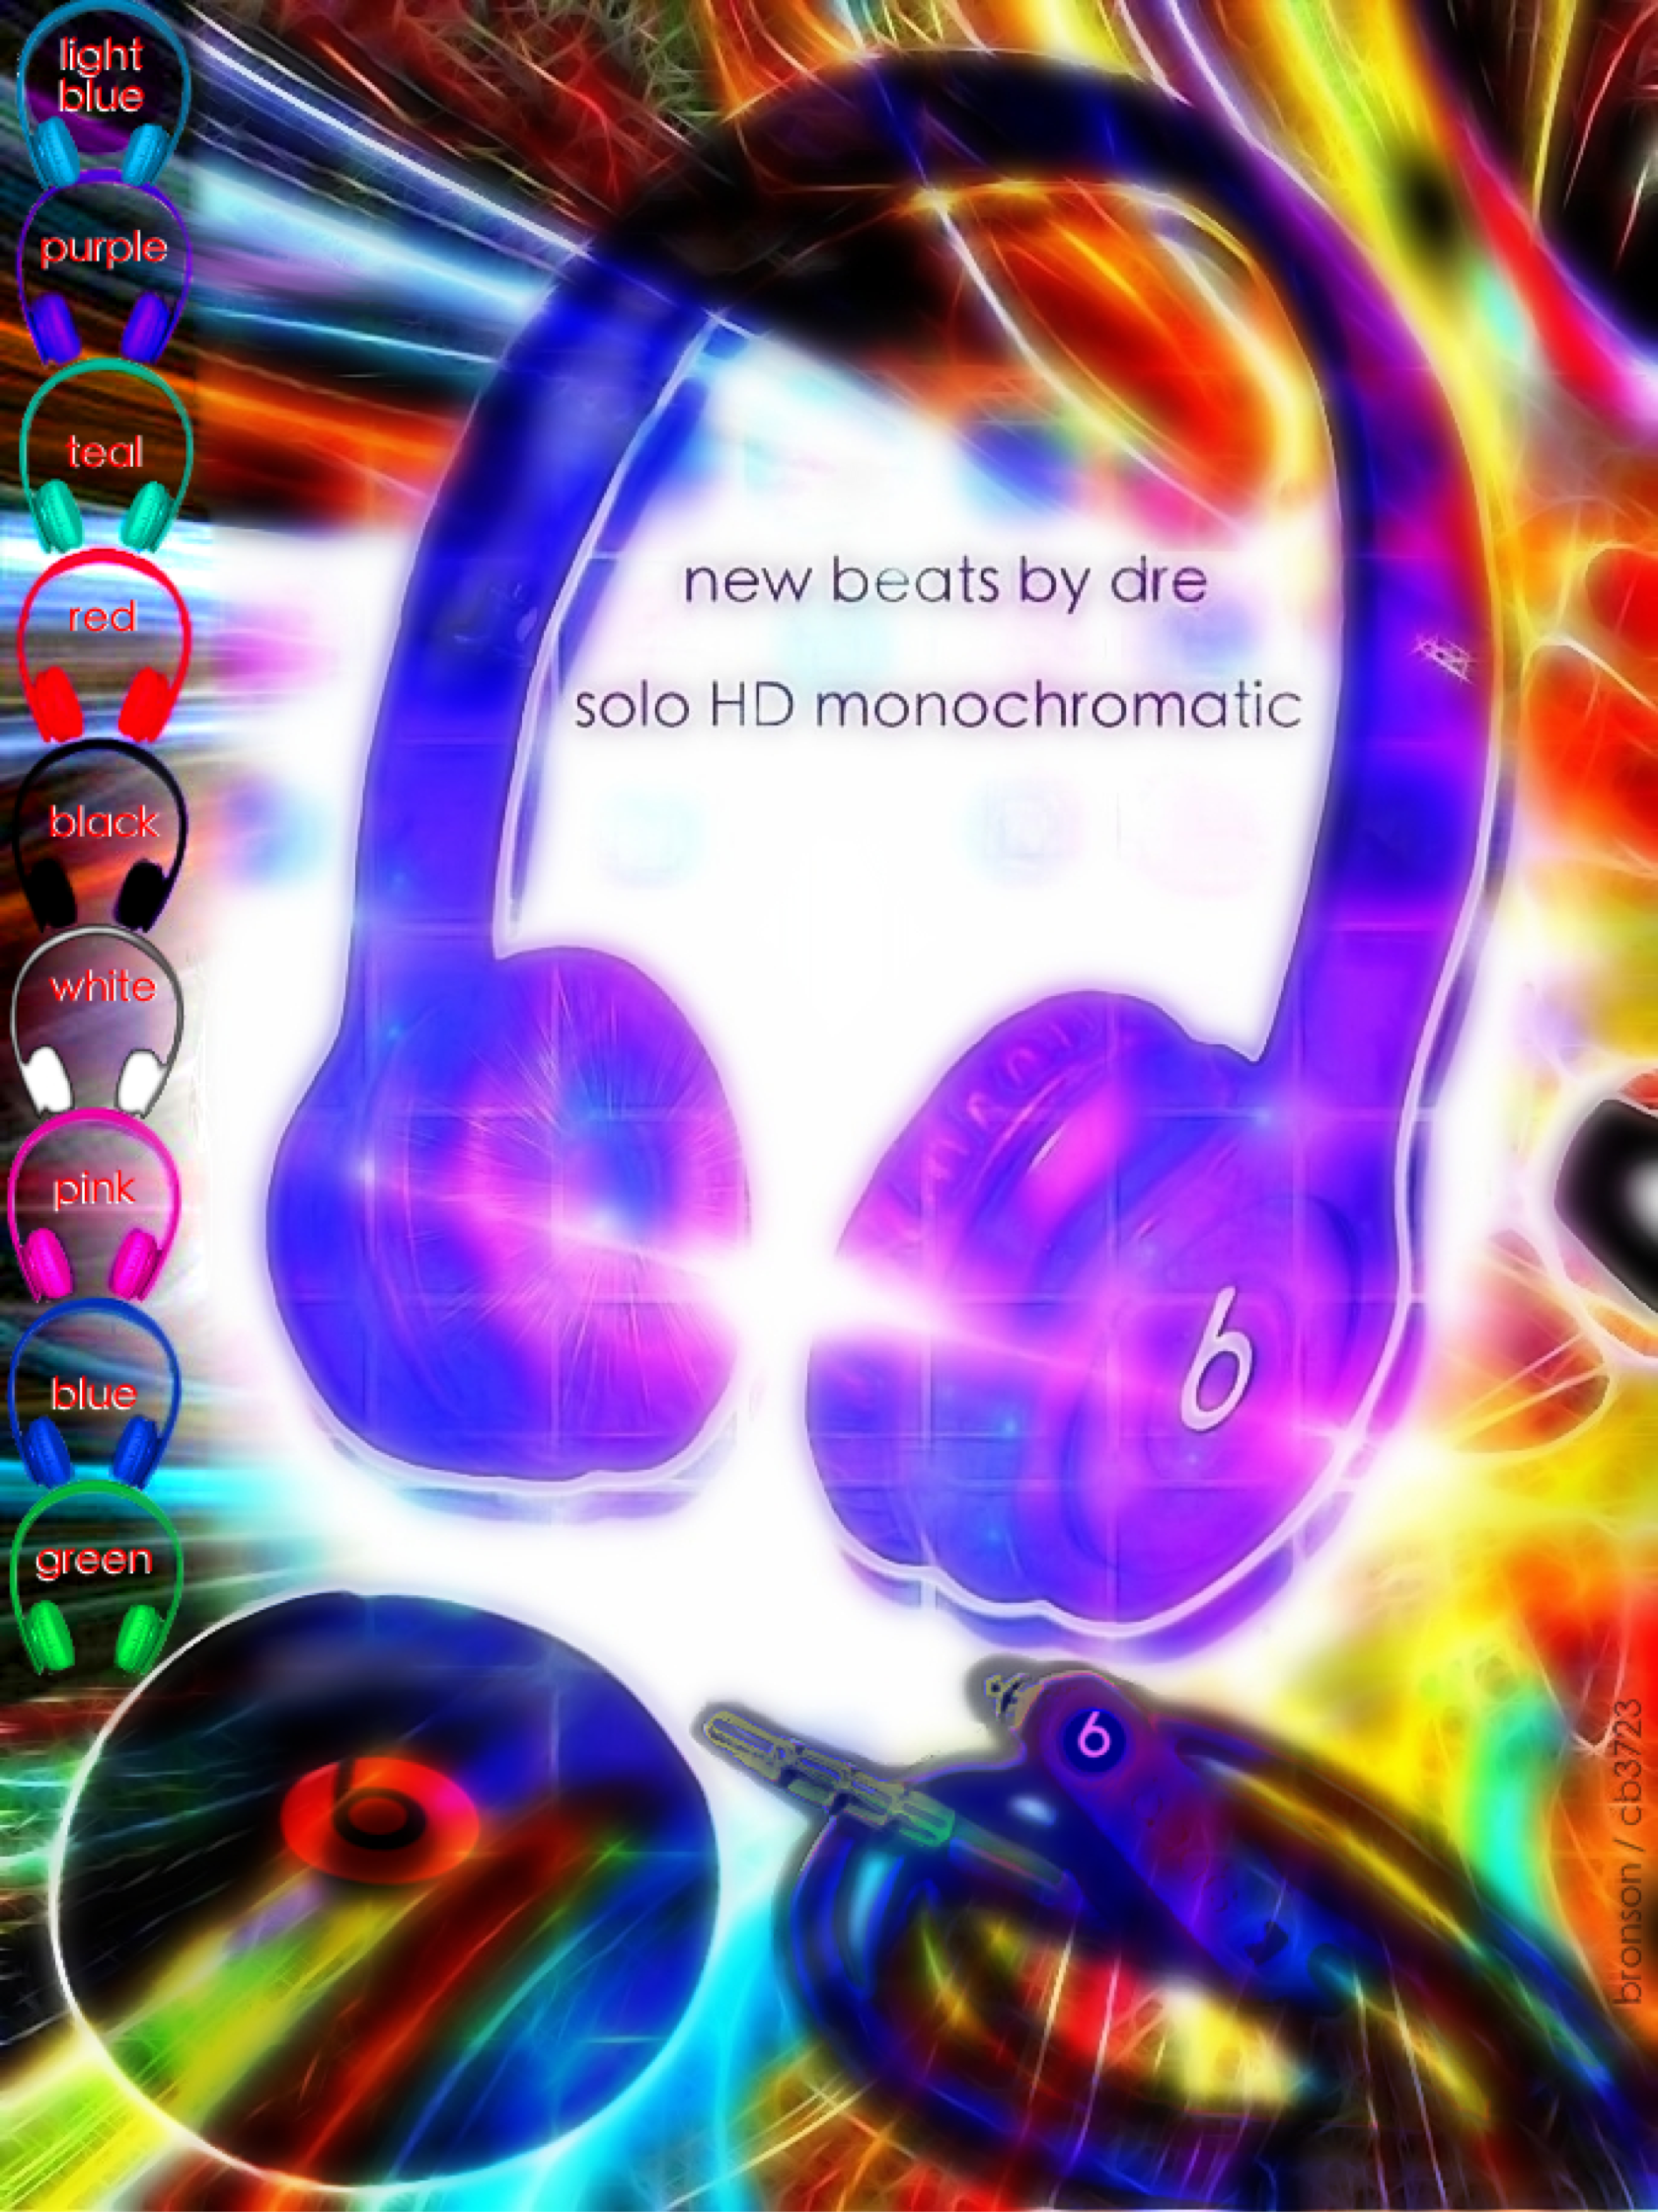 beats_by_dr_dre_solo_hd_monochromatic_headphones_by_cb3723-d6v57ip.png